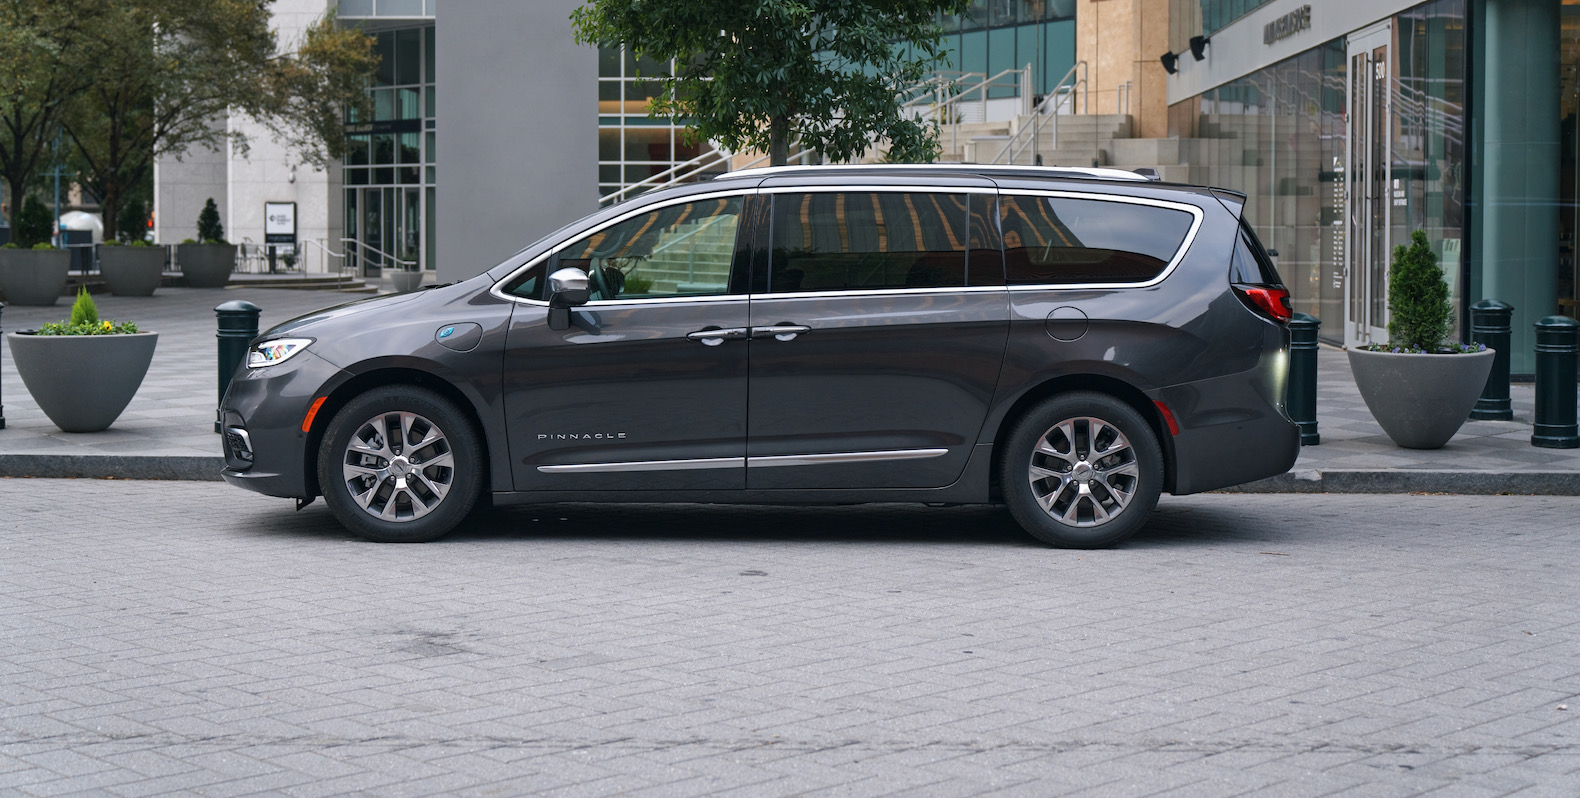 2021 Chrysler Pacifica Review